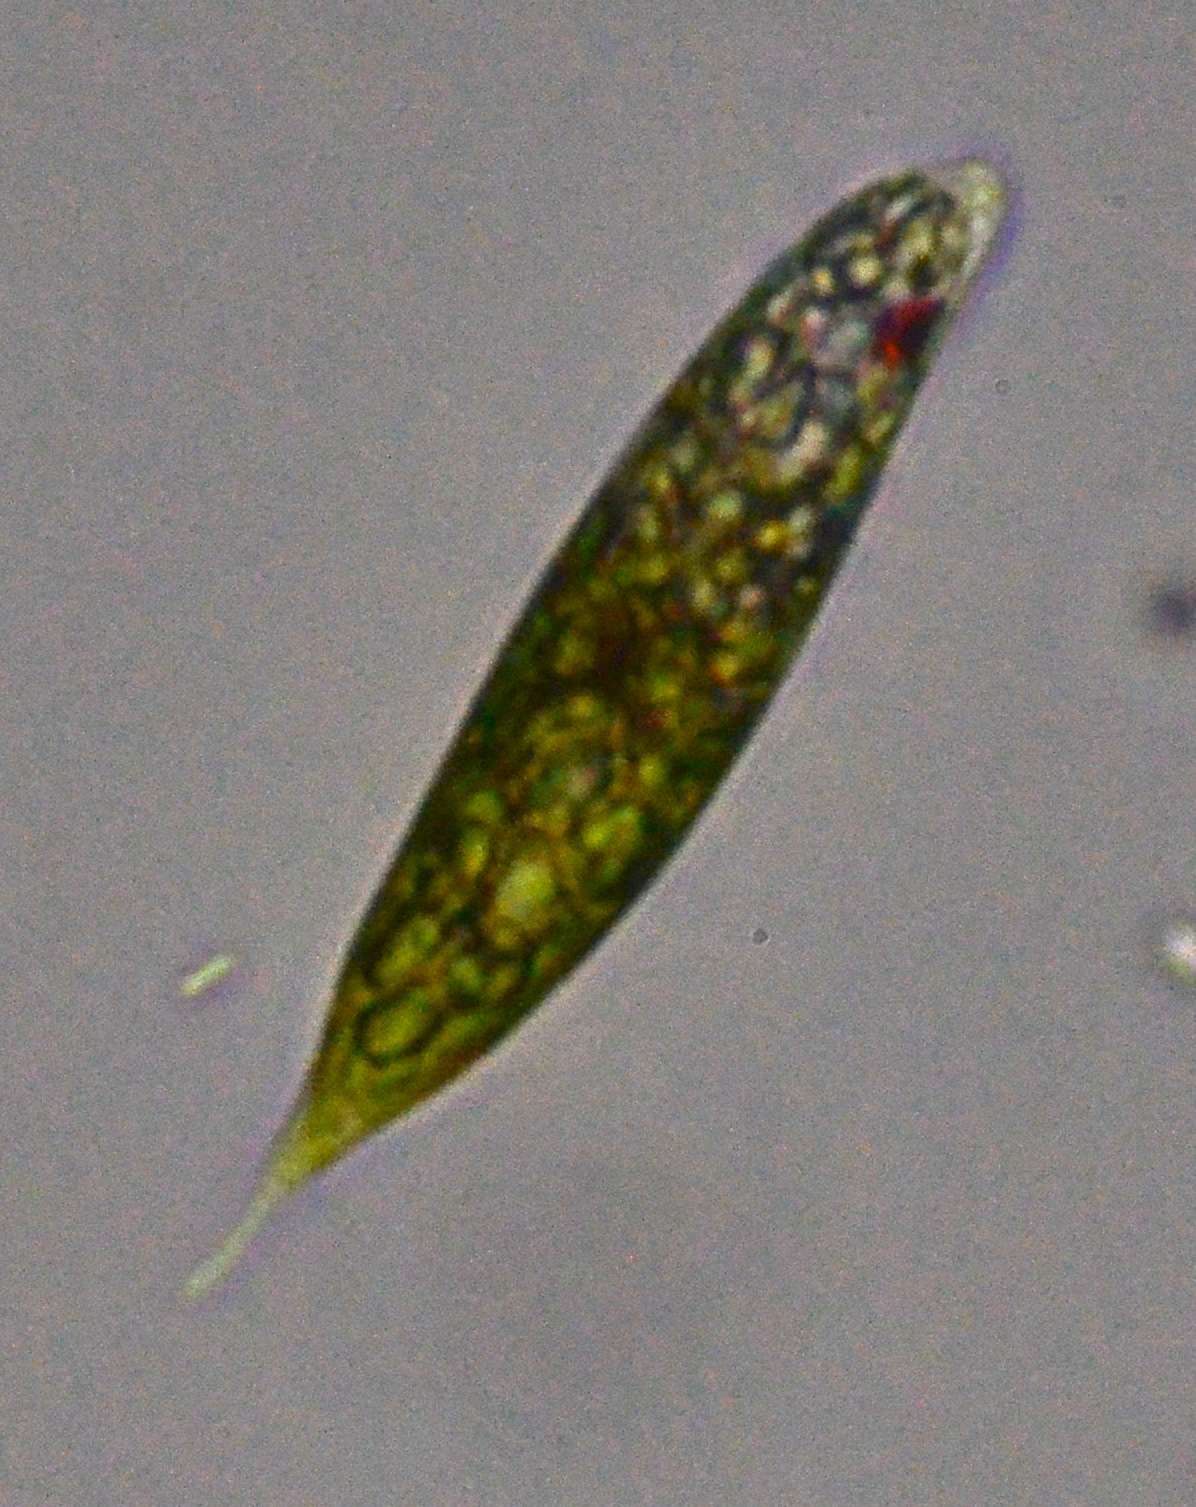 an analysis of the phototaxis in euglena gracilis a microorganism Chemical analysis of potential pollutants in wastewater is hampered by the the fine structure of euglena gracilis with special reference to the chloroplasts and pyrenoidsjornal of gravitaxis and vertical phototaxis in the green flagellate, euglena gracilisarchives of.